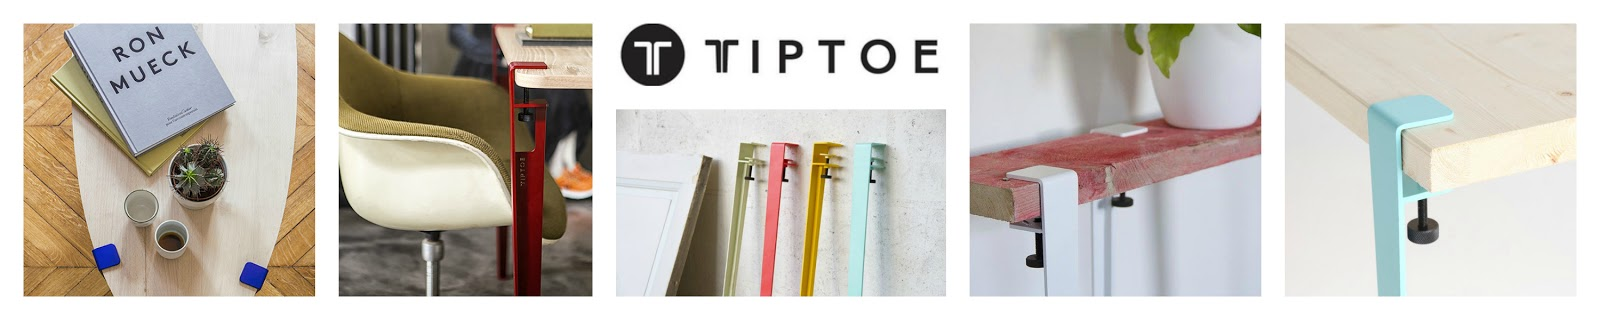 In love with: Tiptoe!